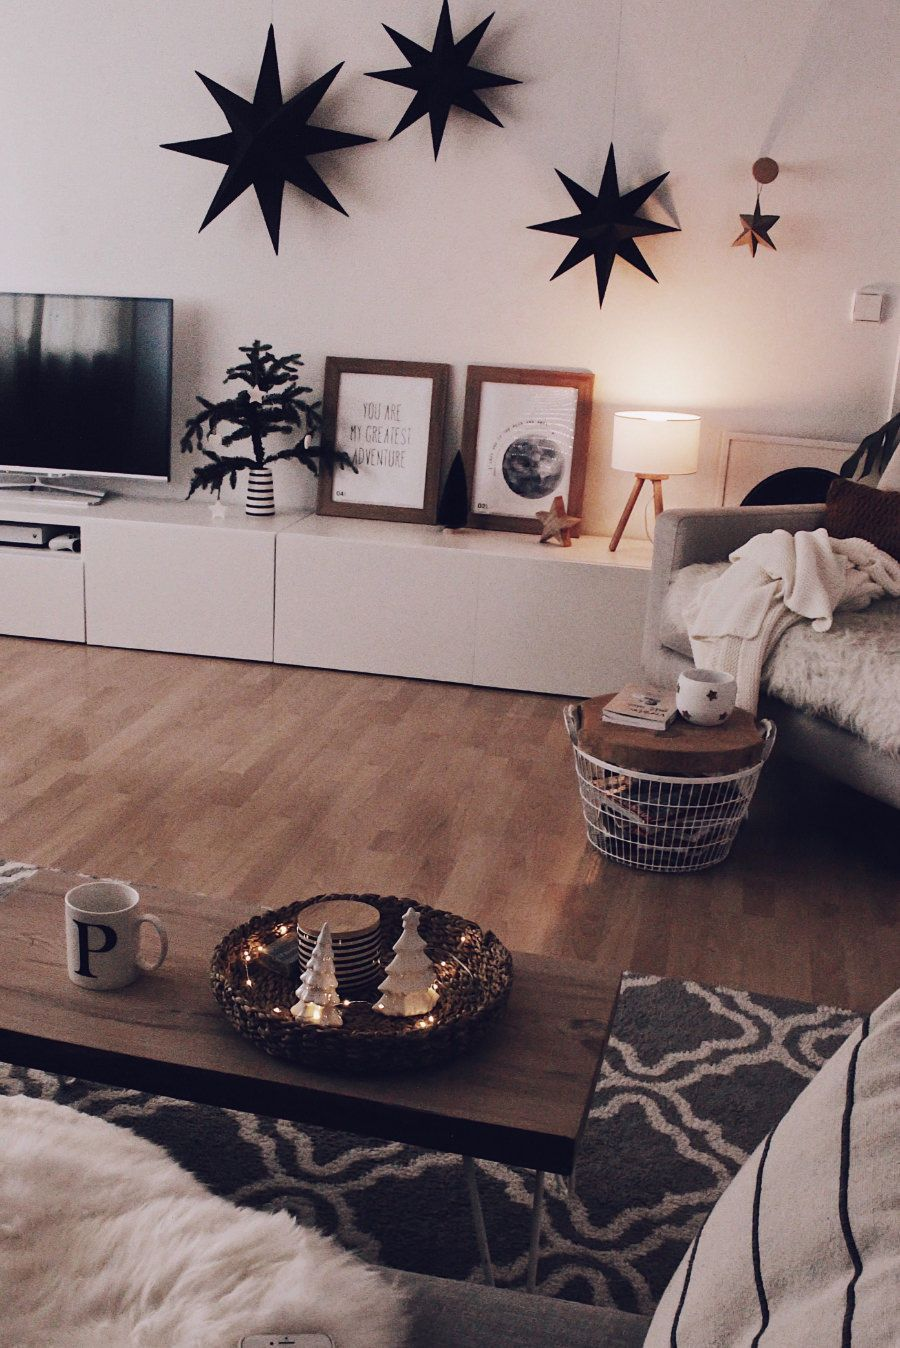 Die Smarte Beleuchtung Mit Philips Hue White And Color Ambiance Ambiance Beleuchtung Col In 2020 Hue Philips Living Room Lighting Apartment Lighting